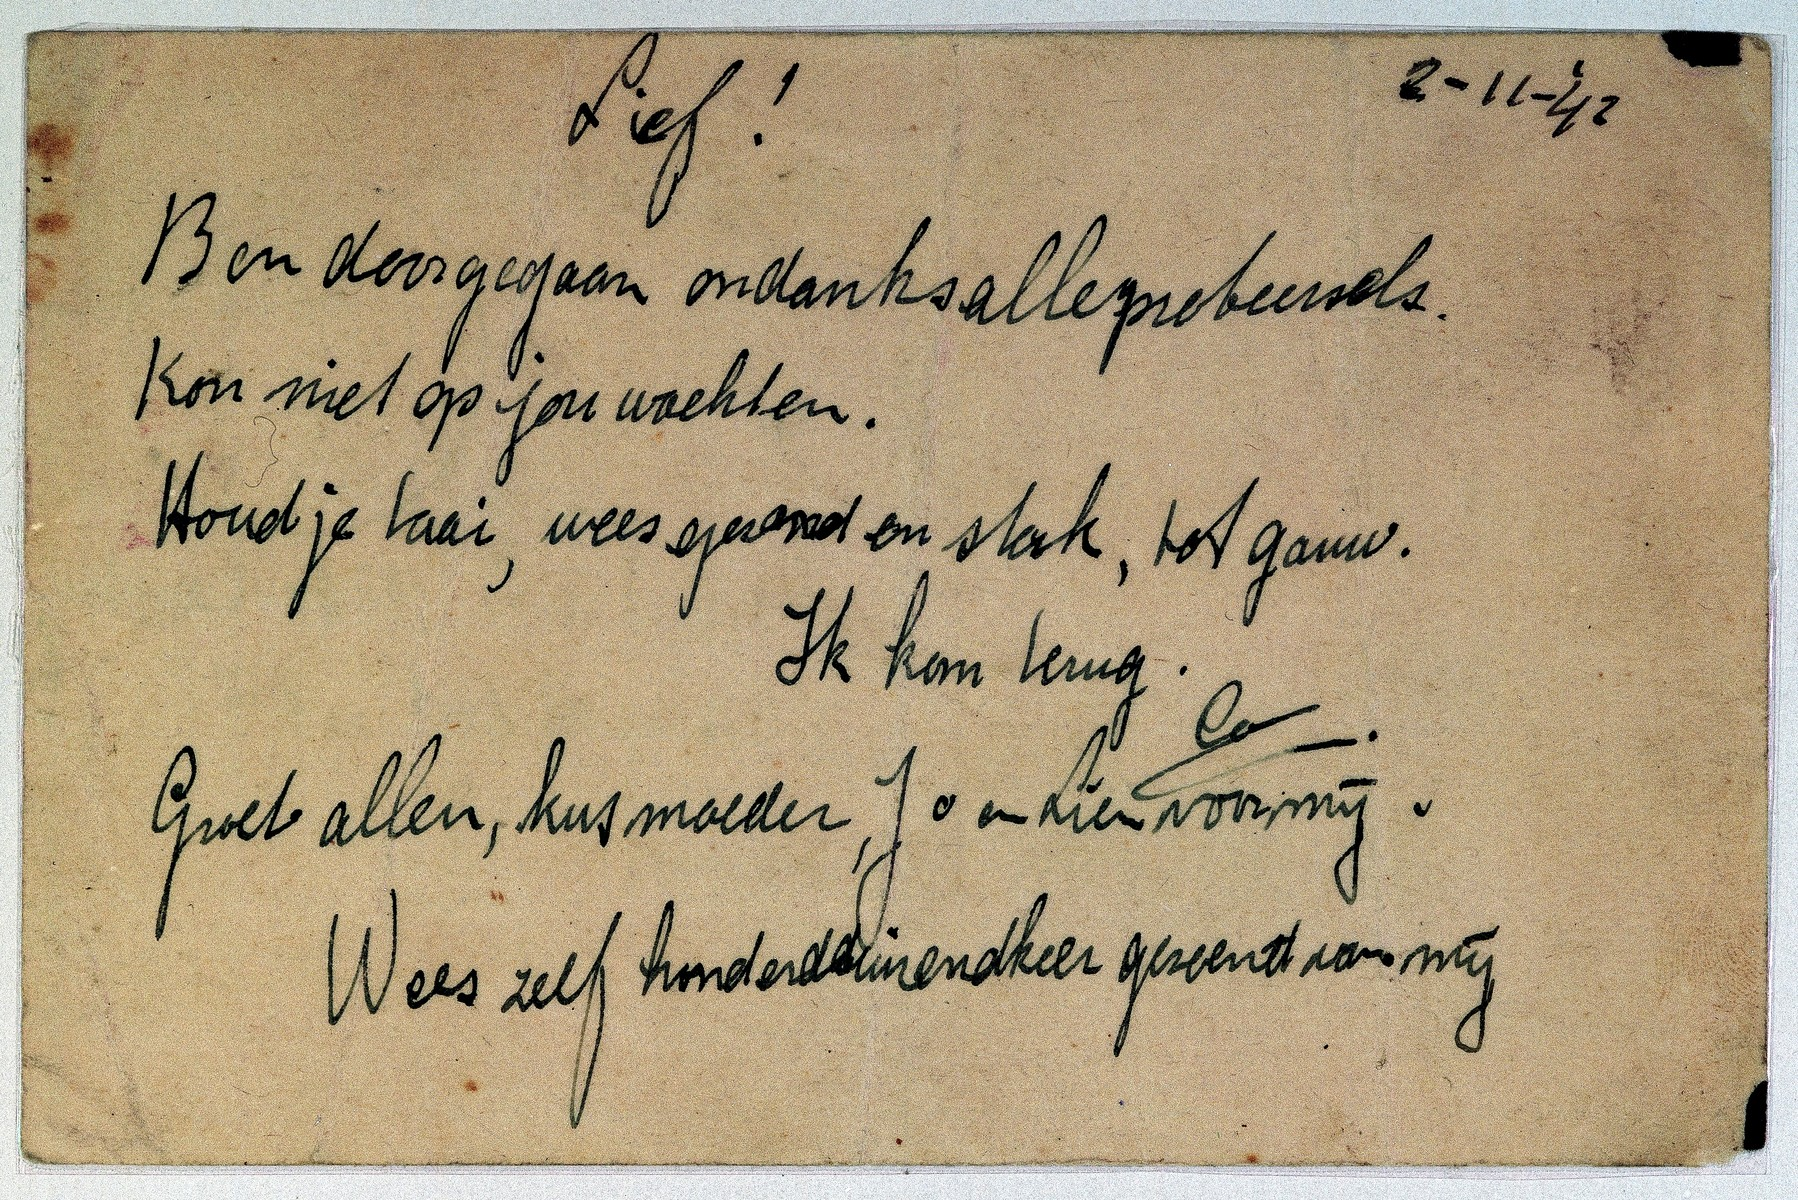 """Verso of a postcard written from Coenraad Rood to his wife Elisabeth shortly from the deportation train from the Westerbork camp.  He writes, """"I went. Even though I tried, I could not wait for you.  Keep up your strength; be healthy and strong.  See you soon.  I'll come back.  Regards to all; kiss mother for me.  I kiss you a hundred times."""""""